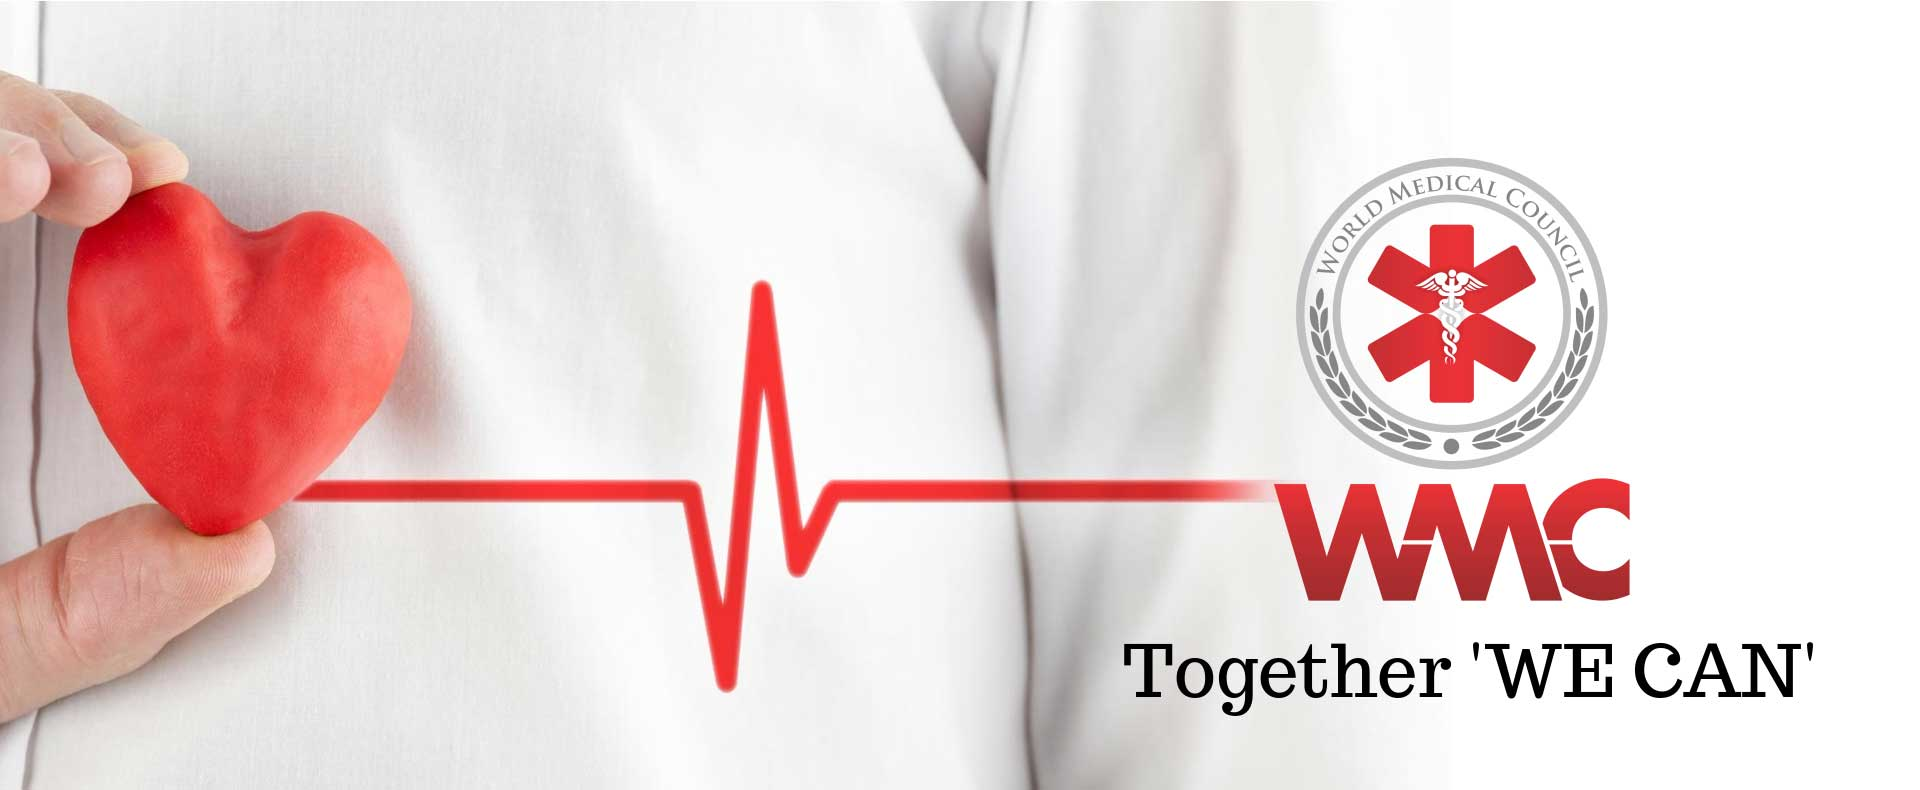 World Medical Council - 'Together We Can'